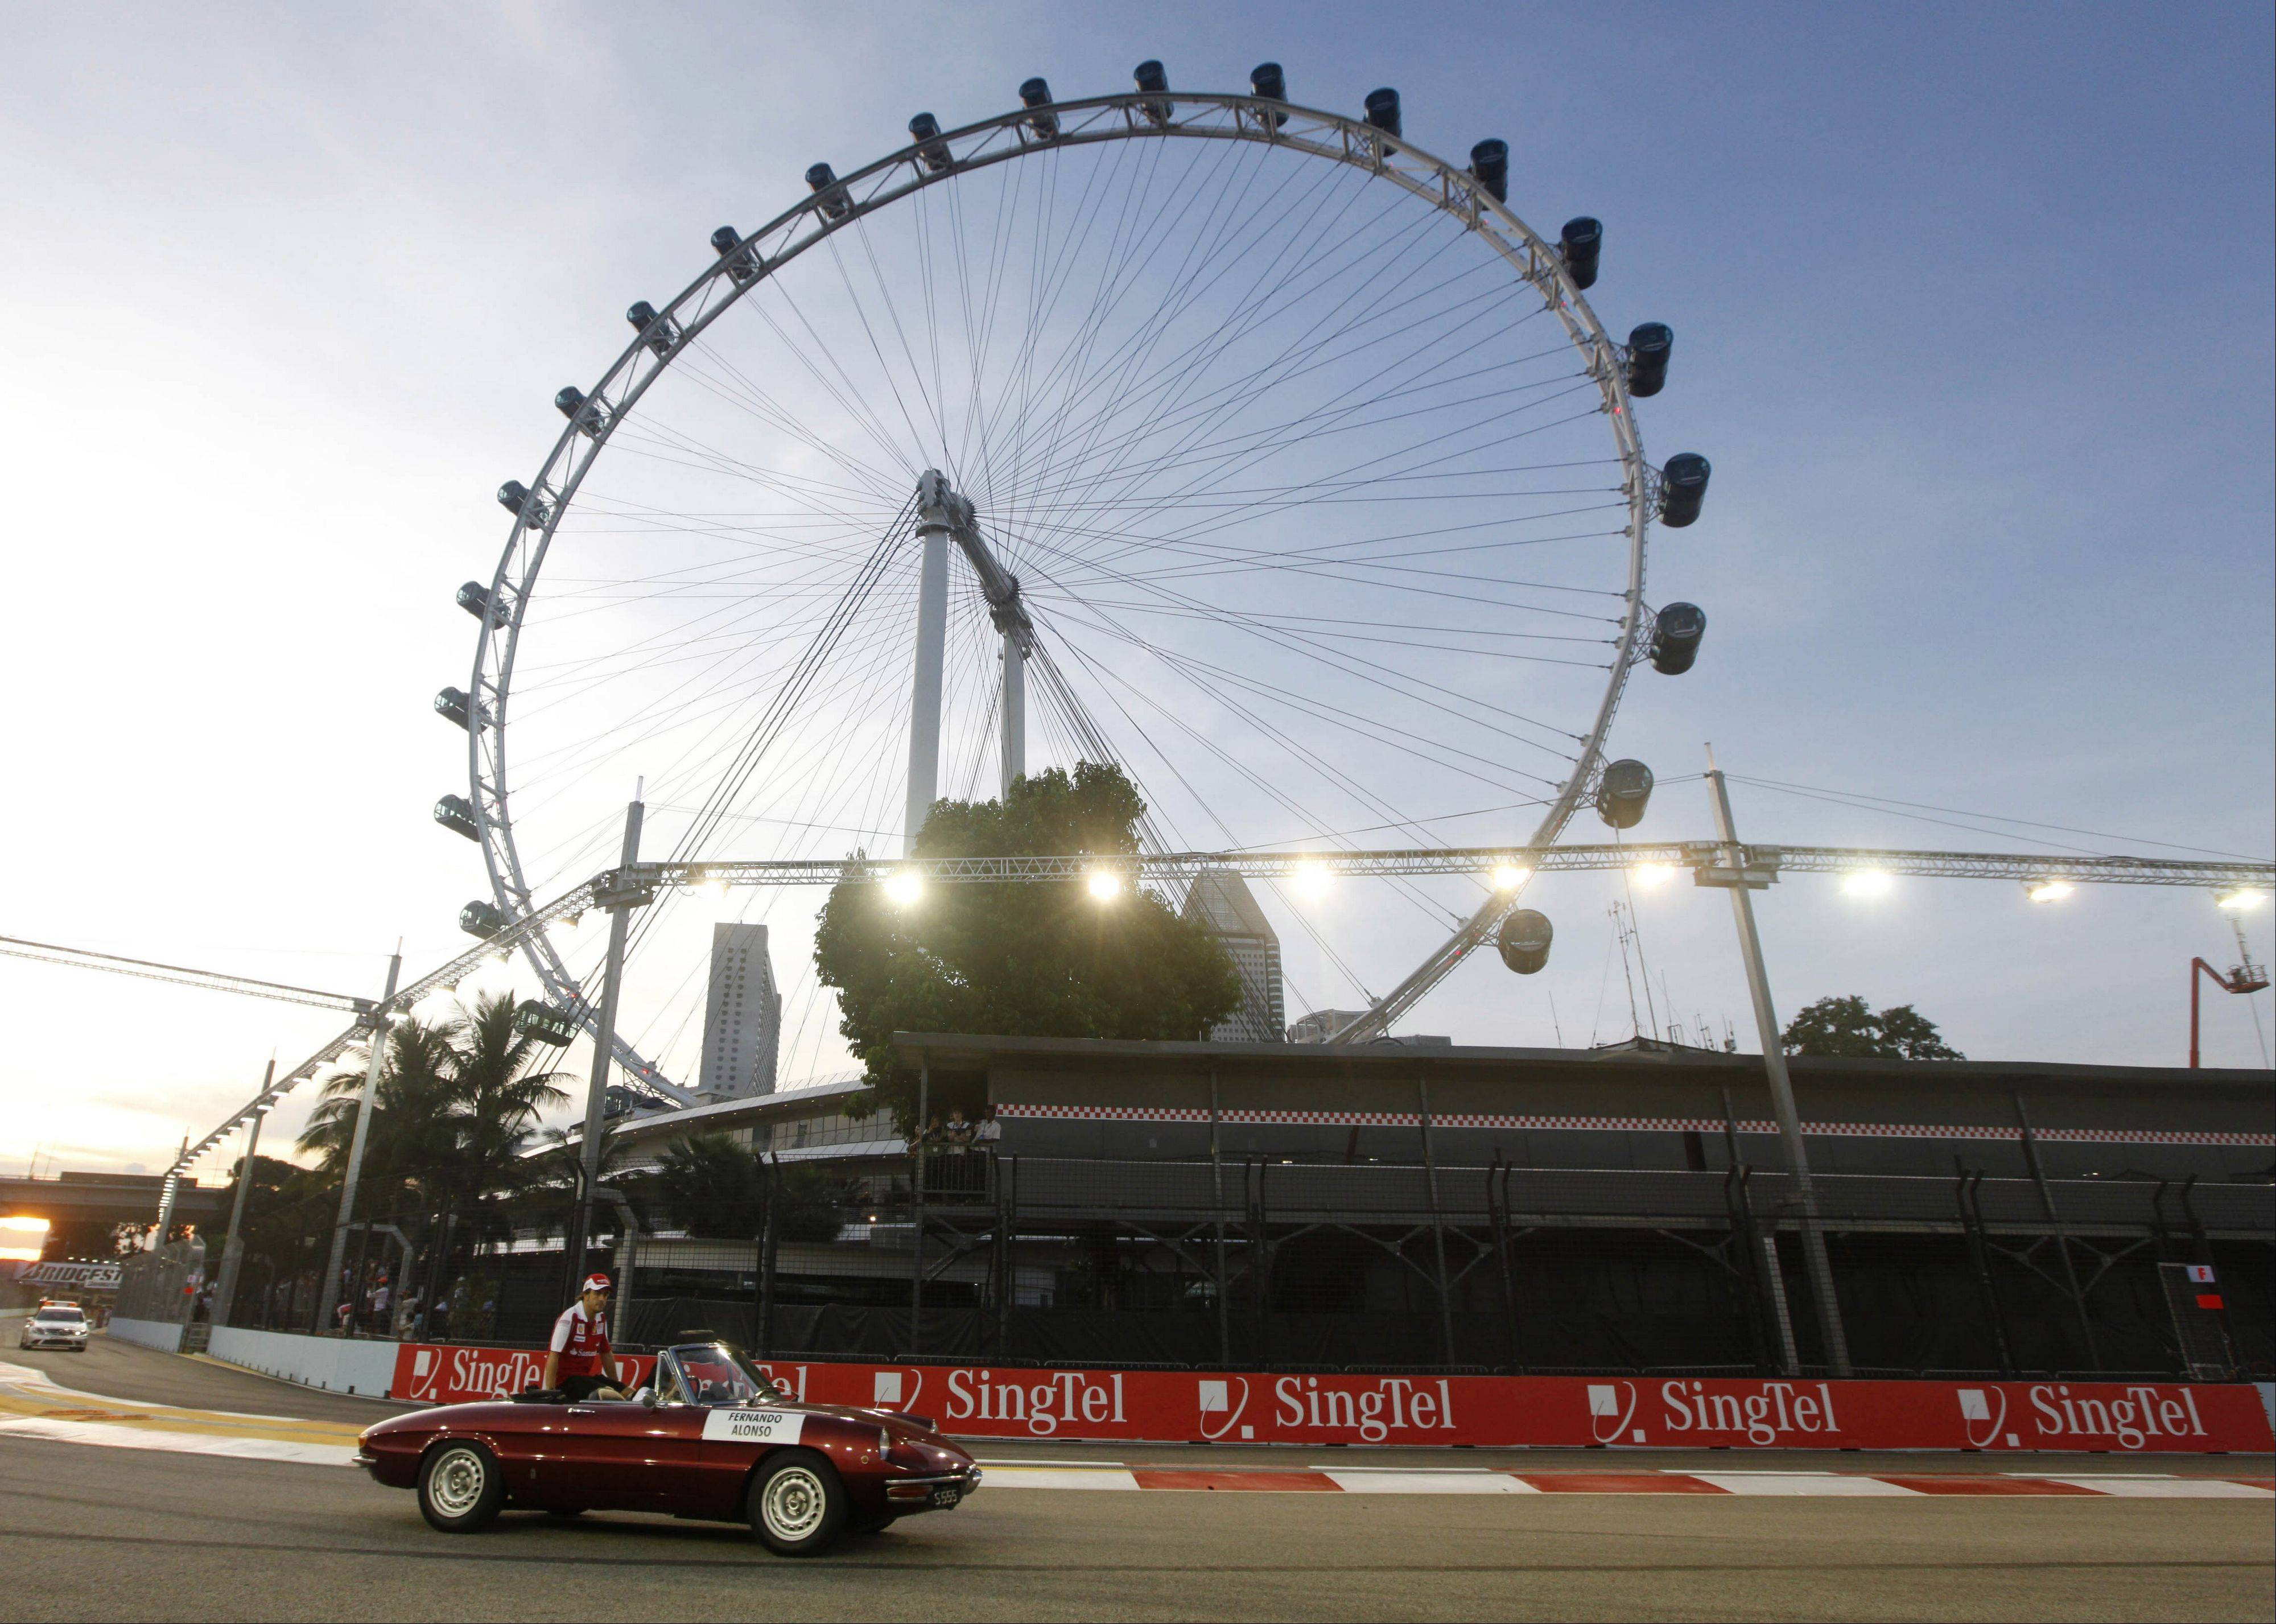 FILE -- In this Sept. 26, 2010 file photo, Ferrari Formula One driver Fernando Alonso of Spain is driven past the 541 foot tall �Singapore Flyer� Ferris wheel during the driver� parade prior to the start of the Singapore Grand Prix on the Marina Bay City Circuit in Singapore. The proposed New York Wheel in the Staten Island borough of New York is planned to be 625 feet tall, and expected to open by the end of 2015.